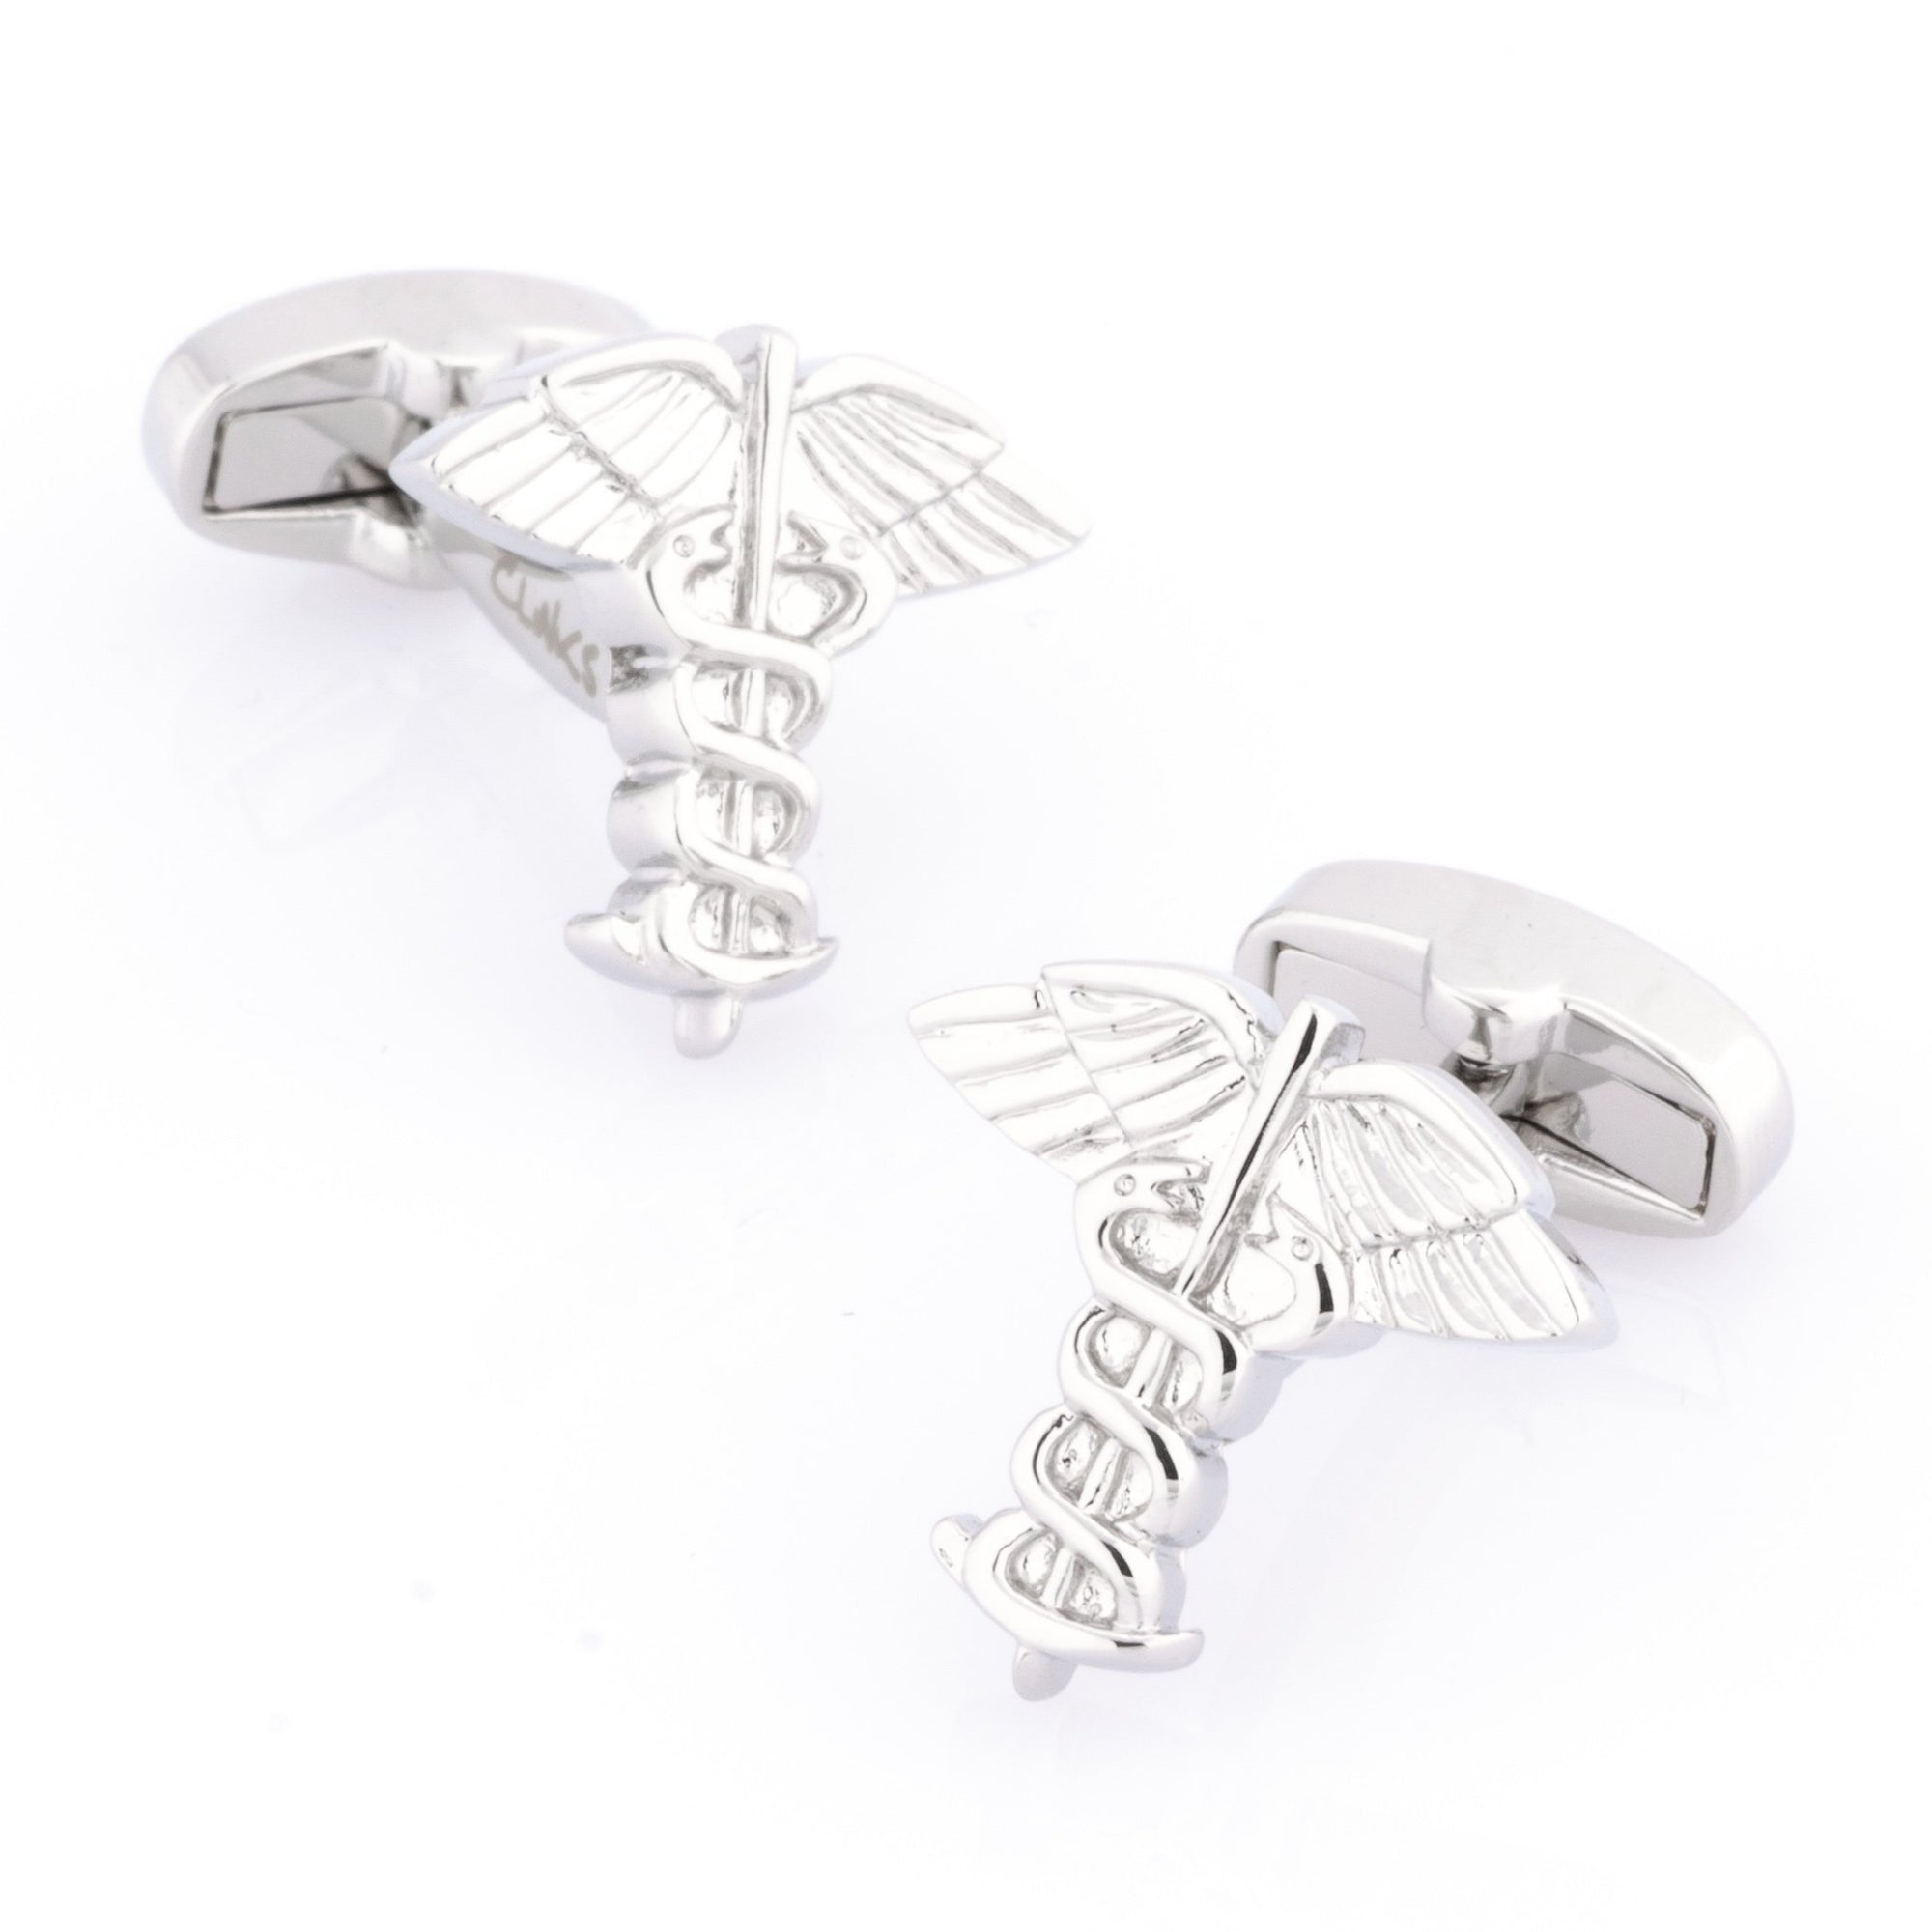 Caduceus Medical Symbol Cufflinks Novelty Cufflinks Clinks Australia